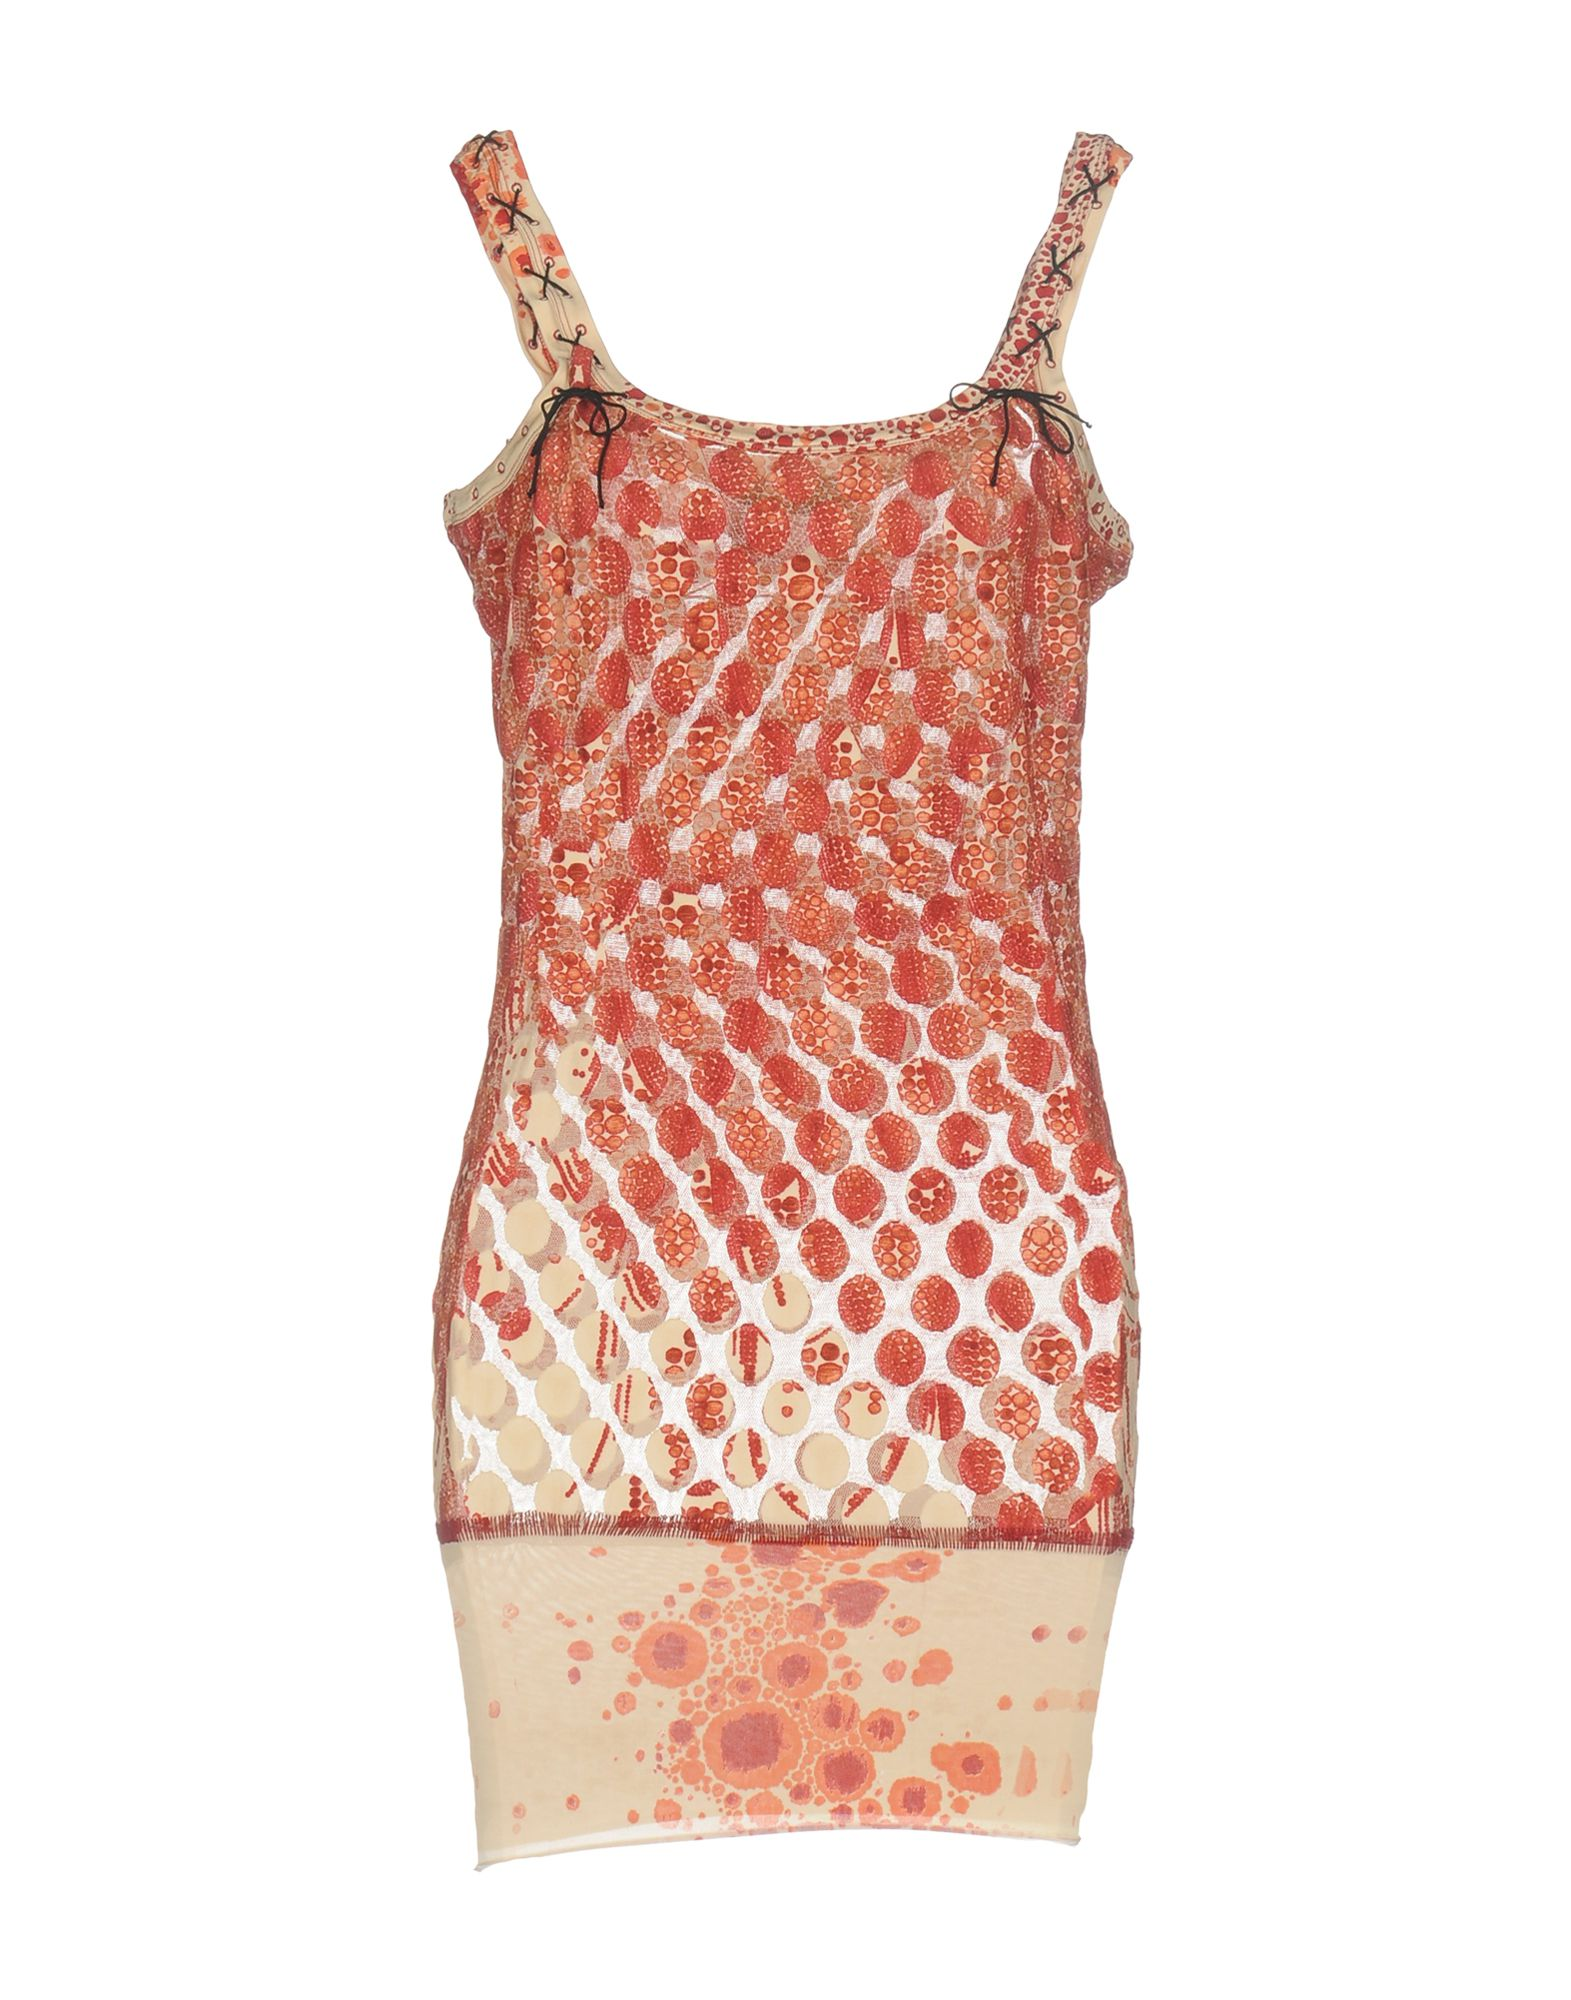 JEAN PAUL GAULTIER MAILLE FEMME Короткое платье jean paul gaultier maille femme майка